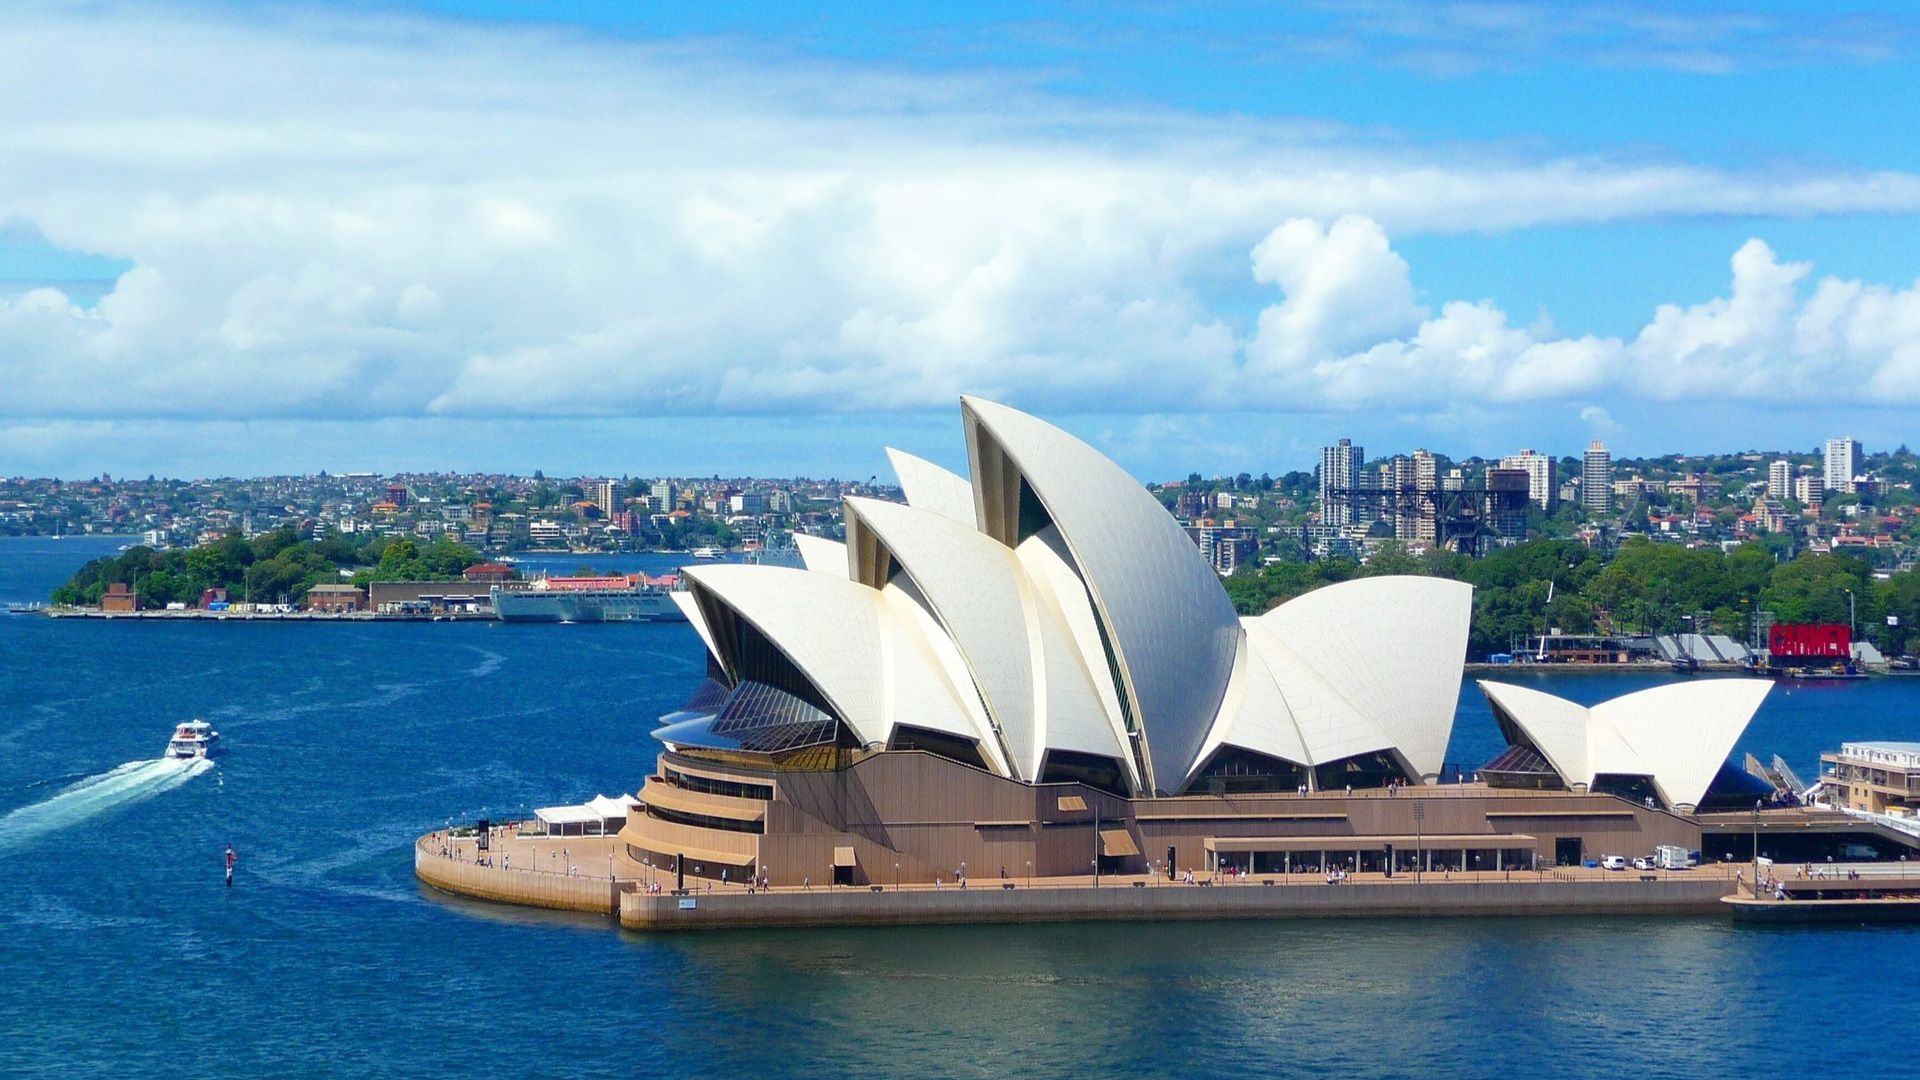 20-day Down Under Discovery